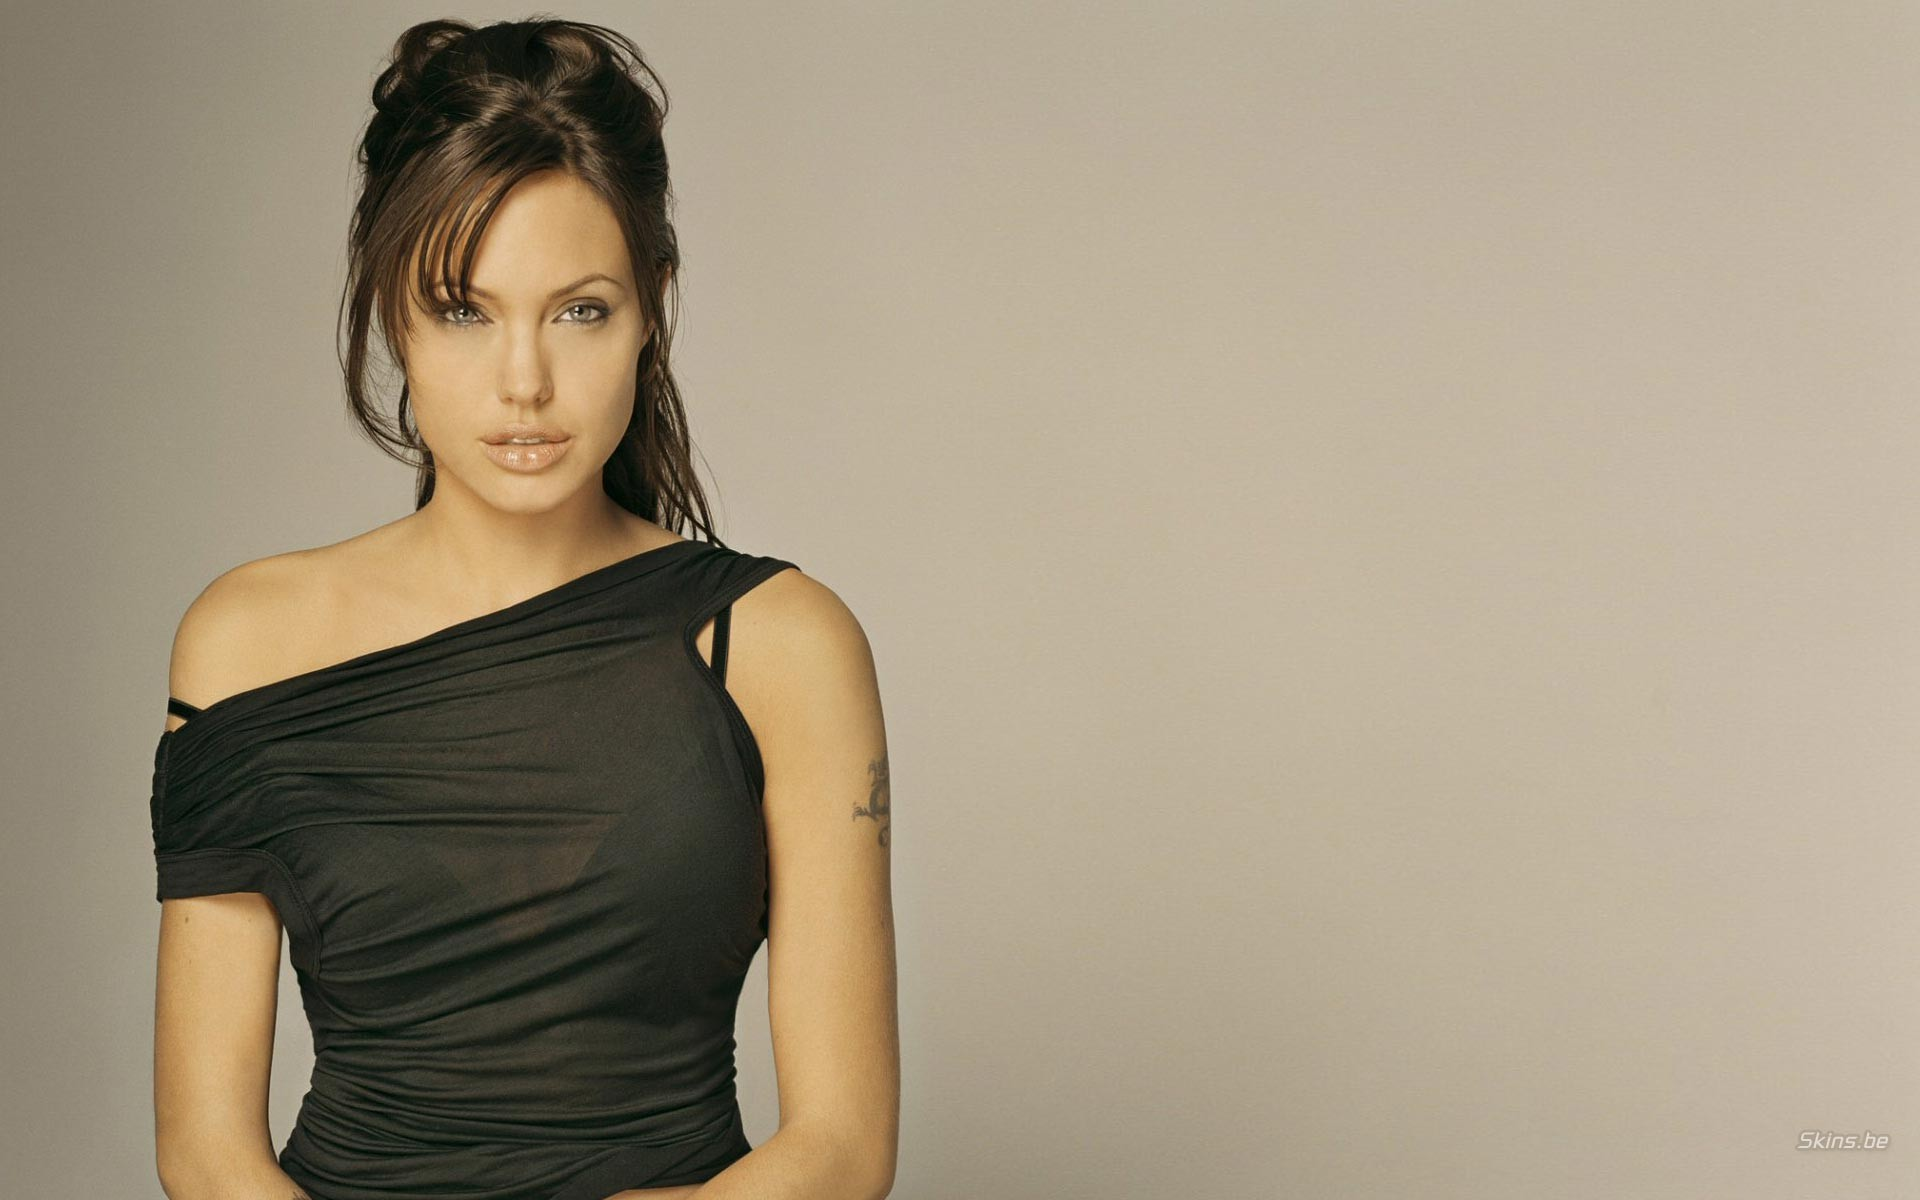 Angelina Jolie y cancer de mama - 1920x1200